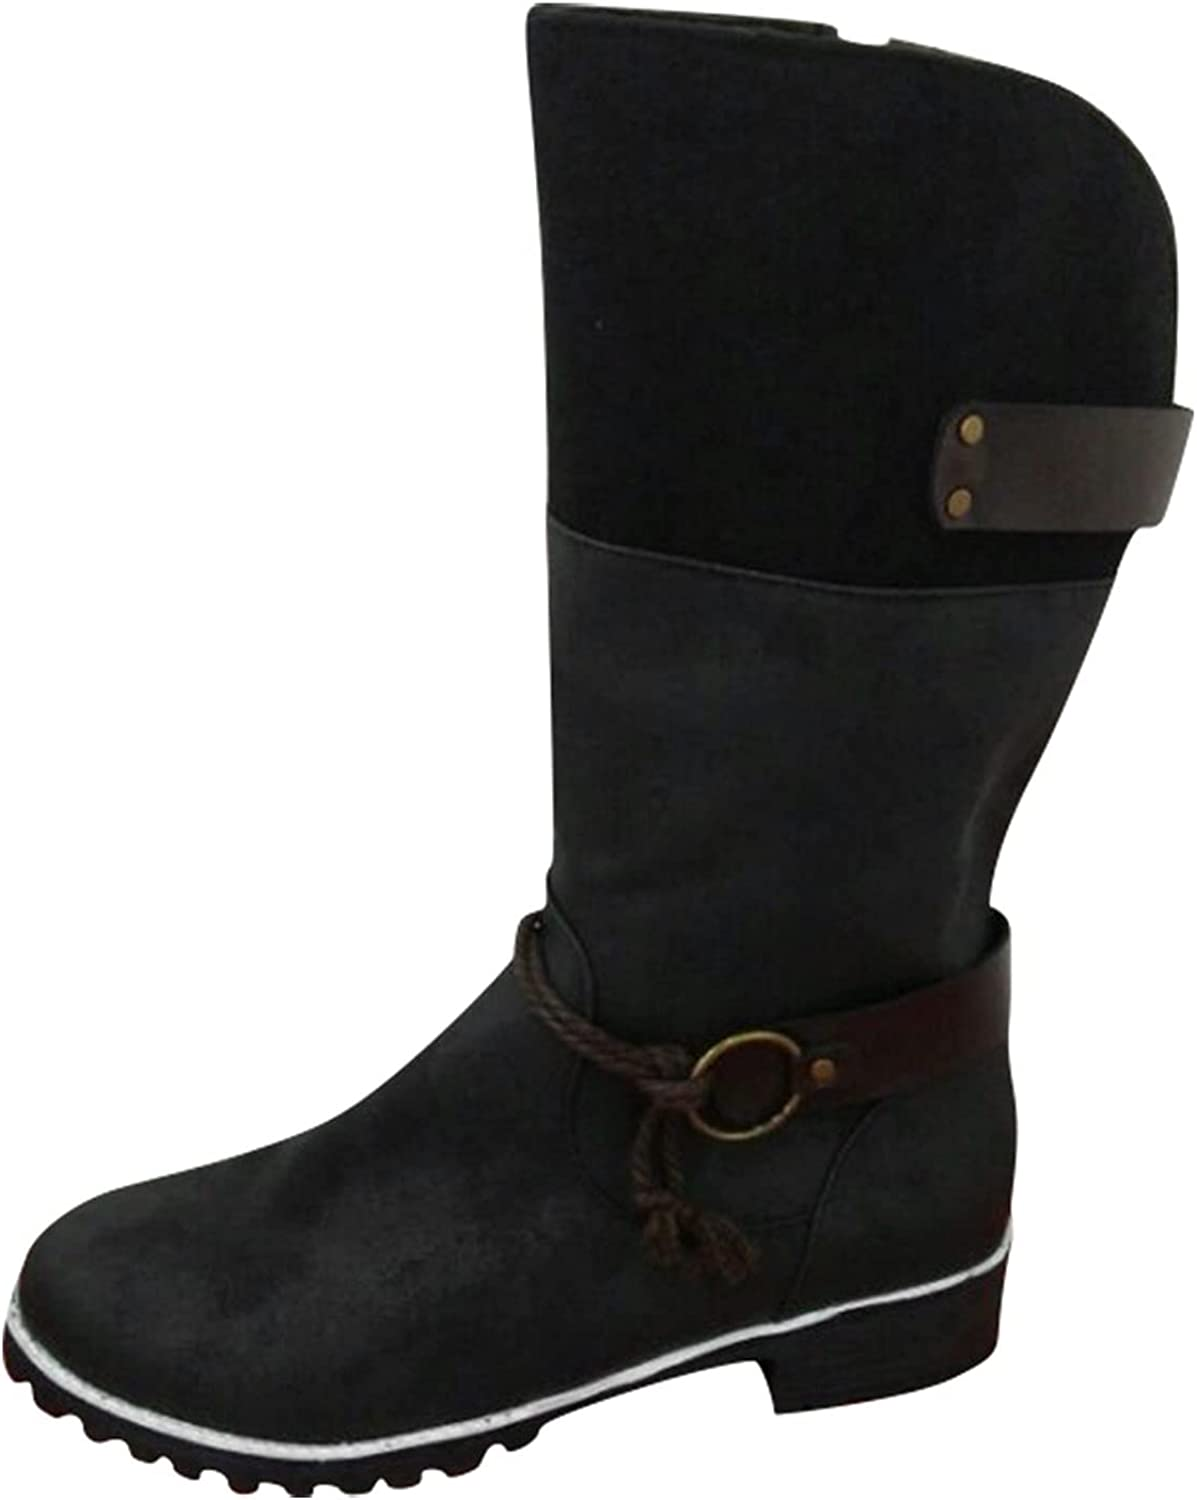 Hemlock Women Retro Mid Calf Boots Round Toe Flat Shoes Winter Snow Boots Knight Boots Combat Western Shoes